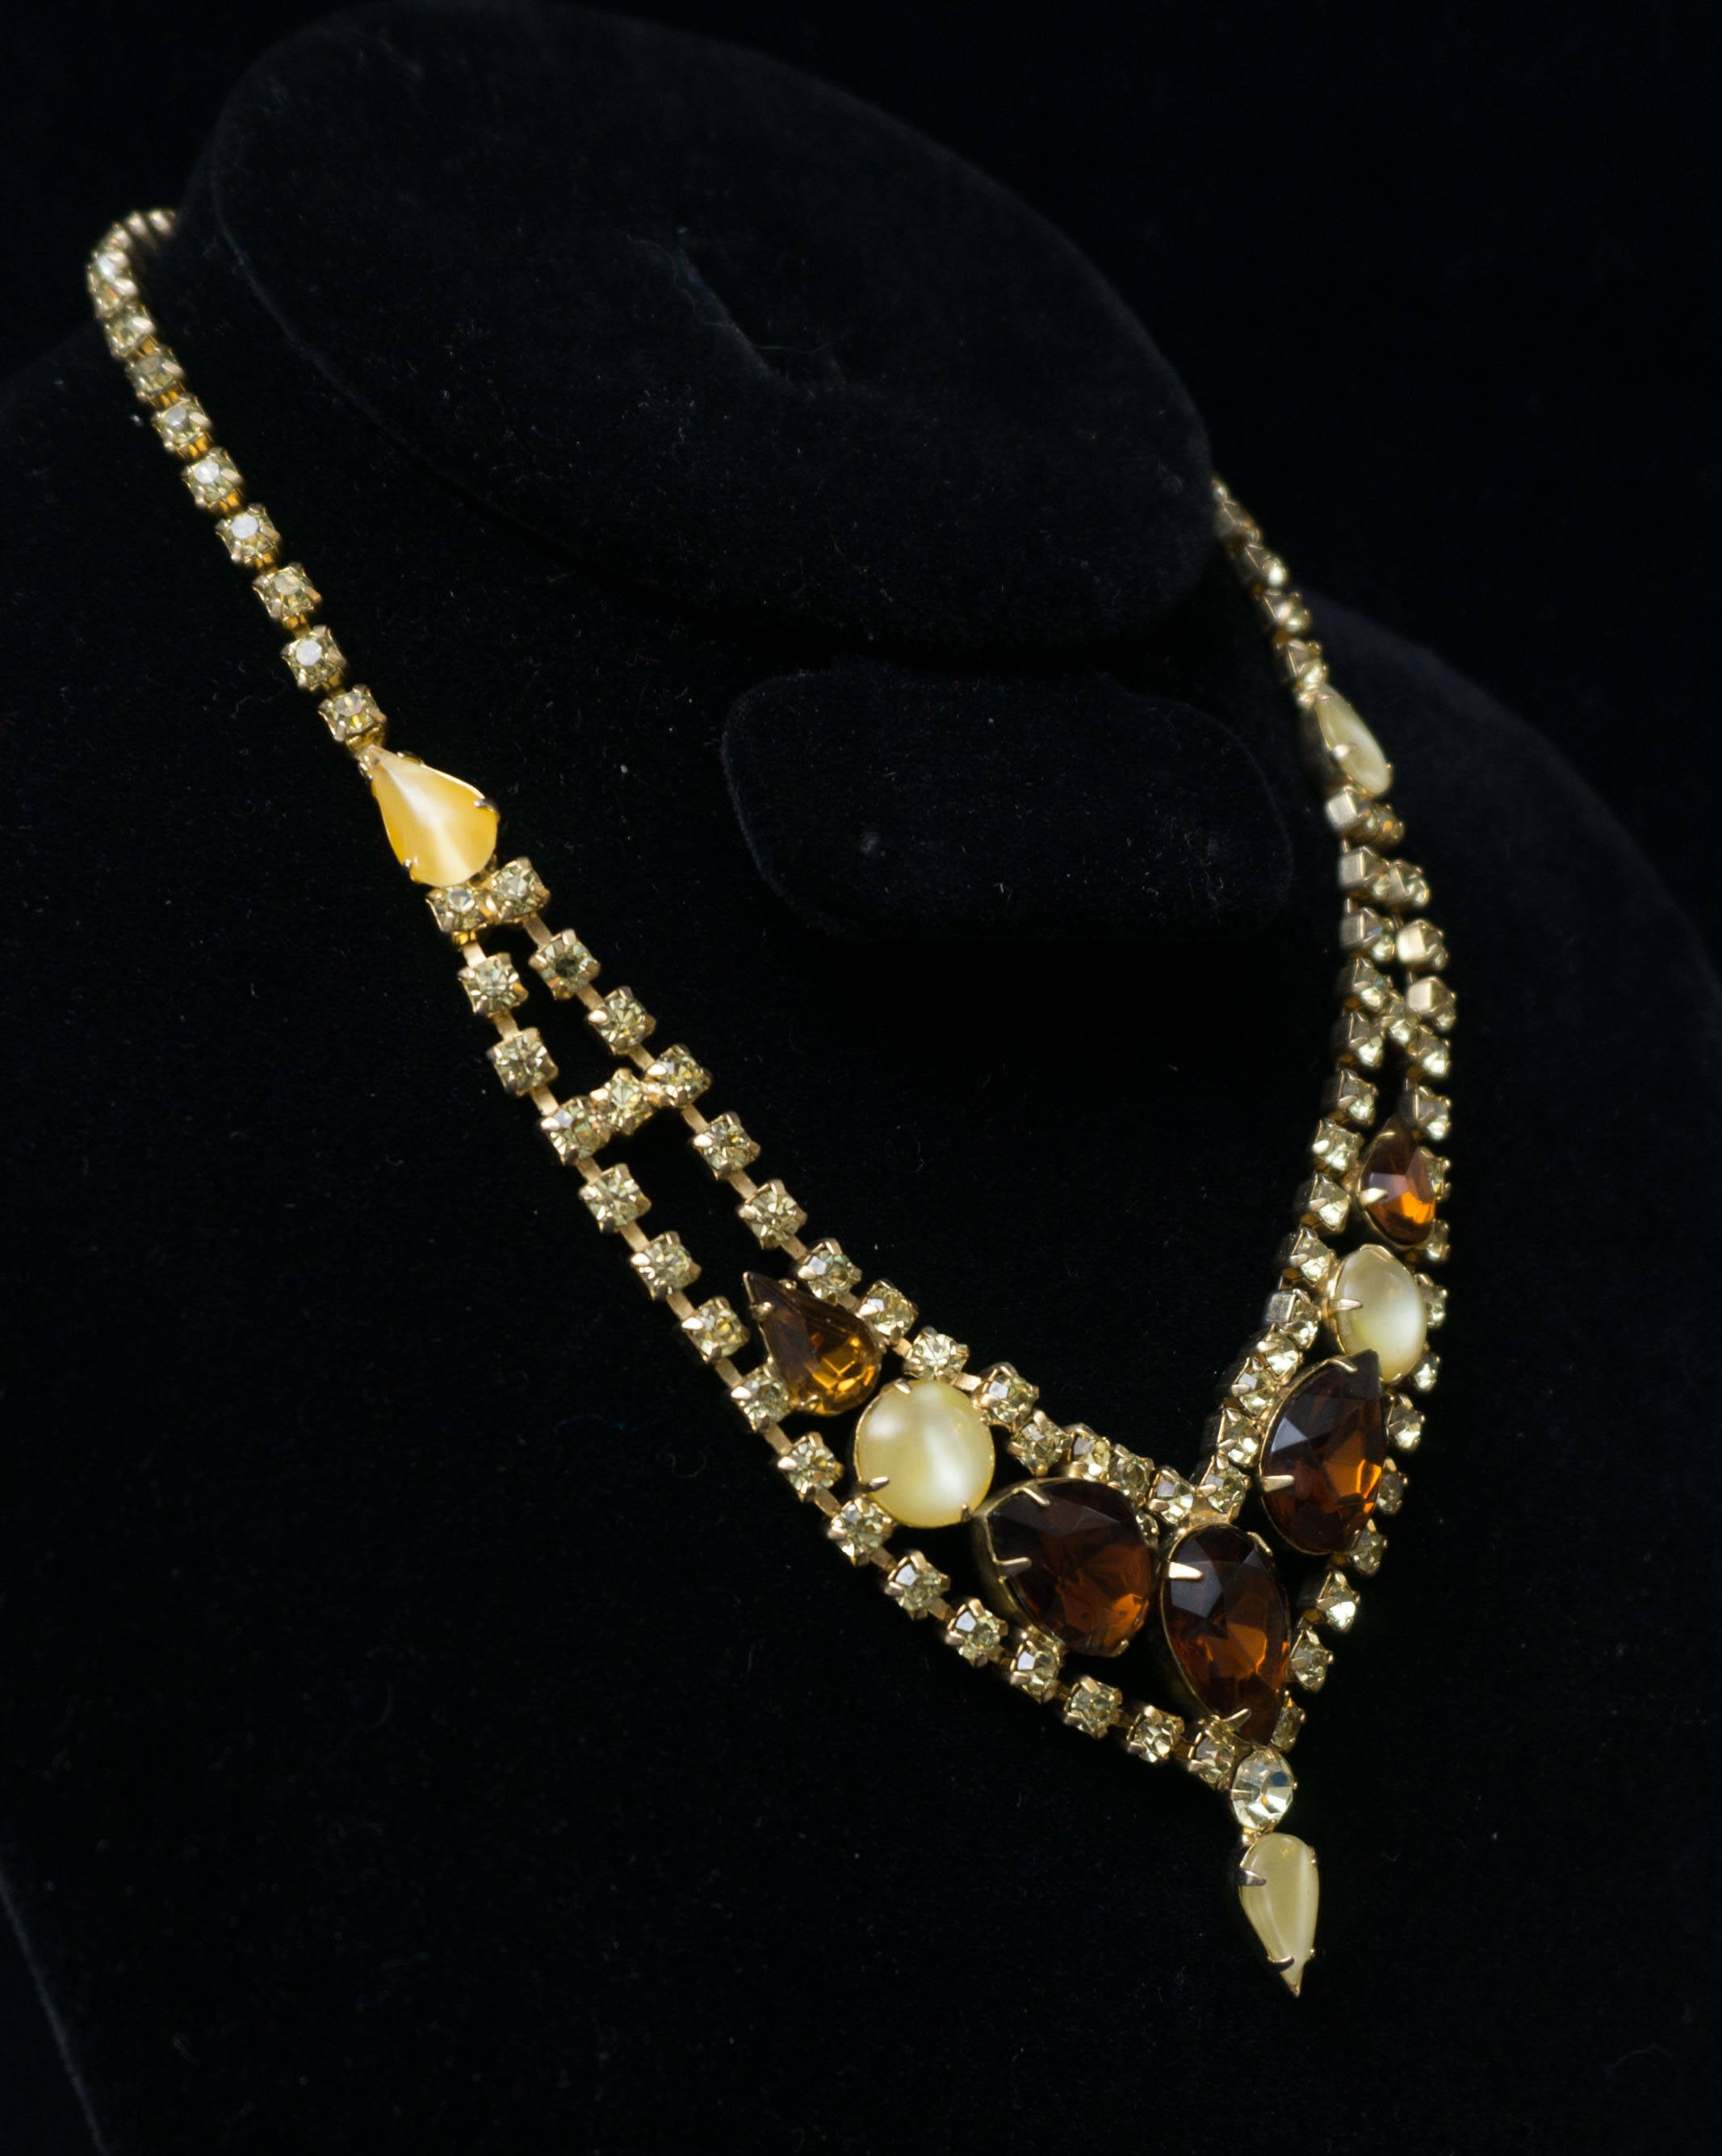 Vintage Amber and Pale Yellow Rhinestone Glamorous 1940s Bib Collar Necklace Choker